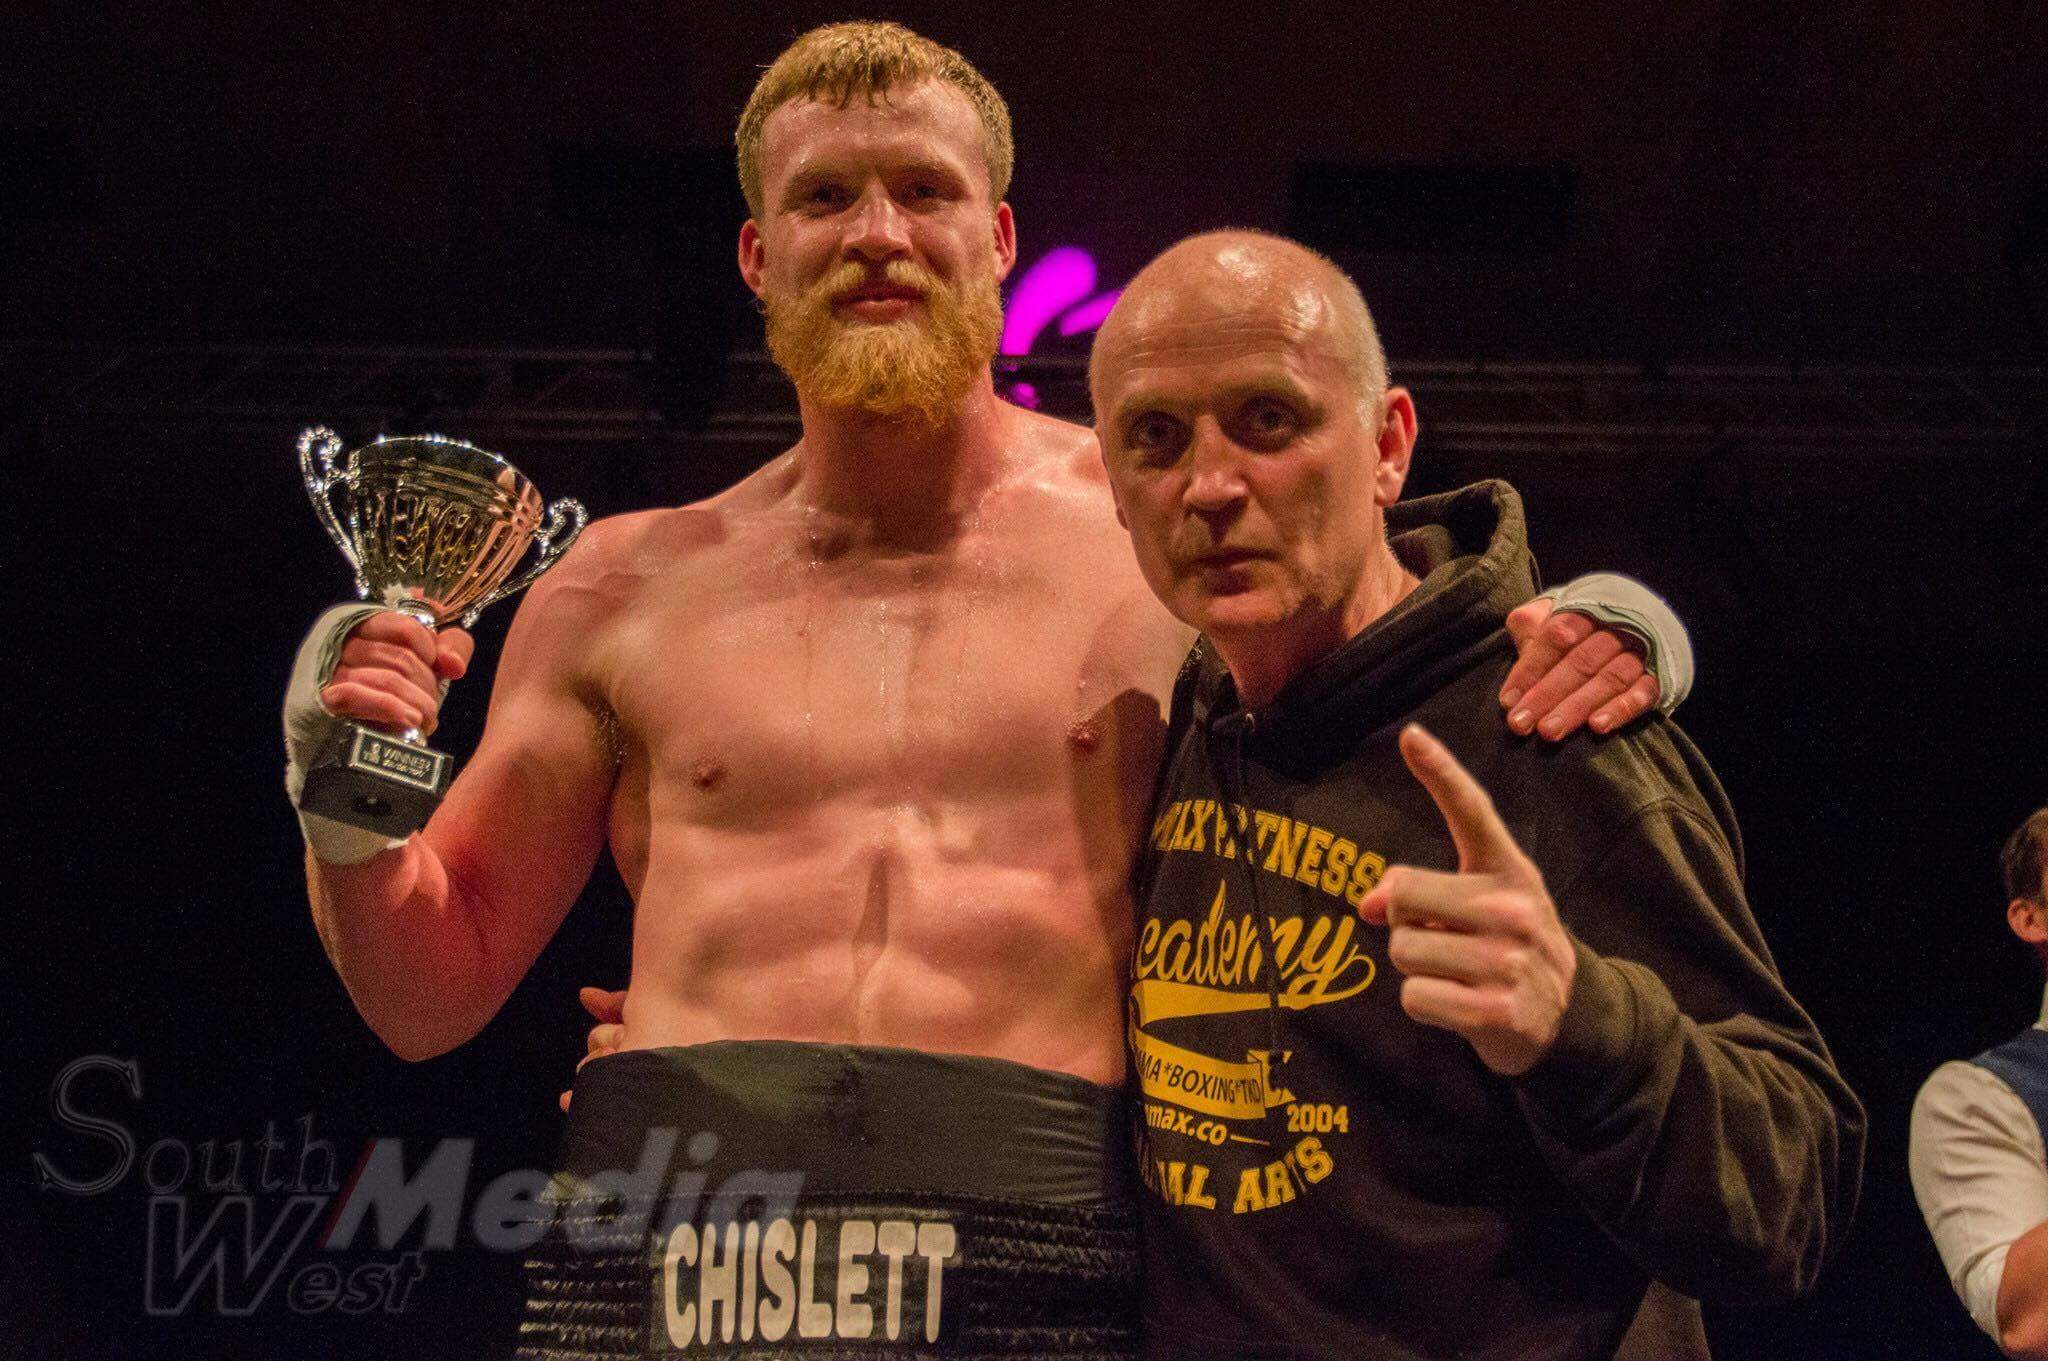 MMAX gym boxer Jake is on a role with another successful win